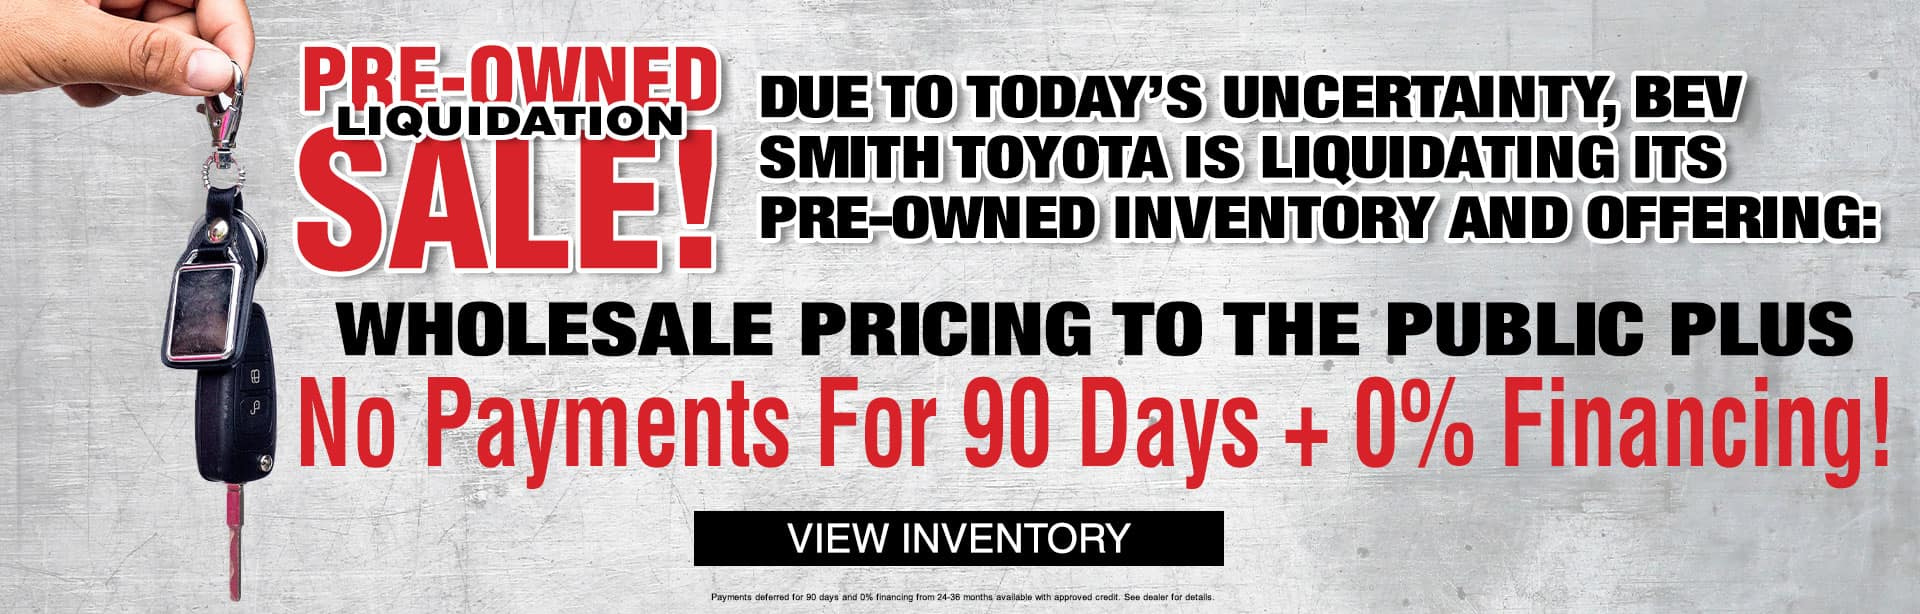 Pre-Owned Liquidation Sale at Bev Smith Toyota